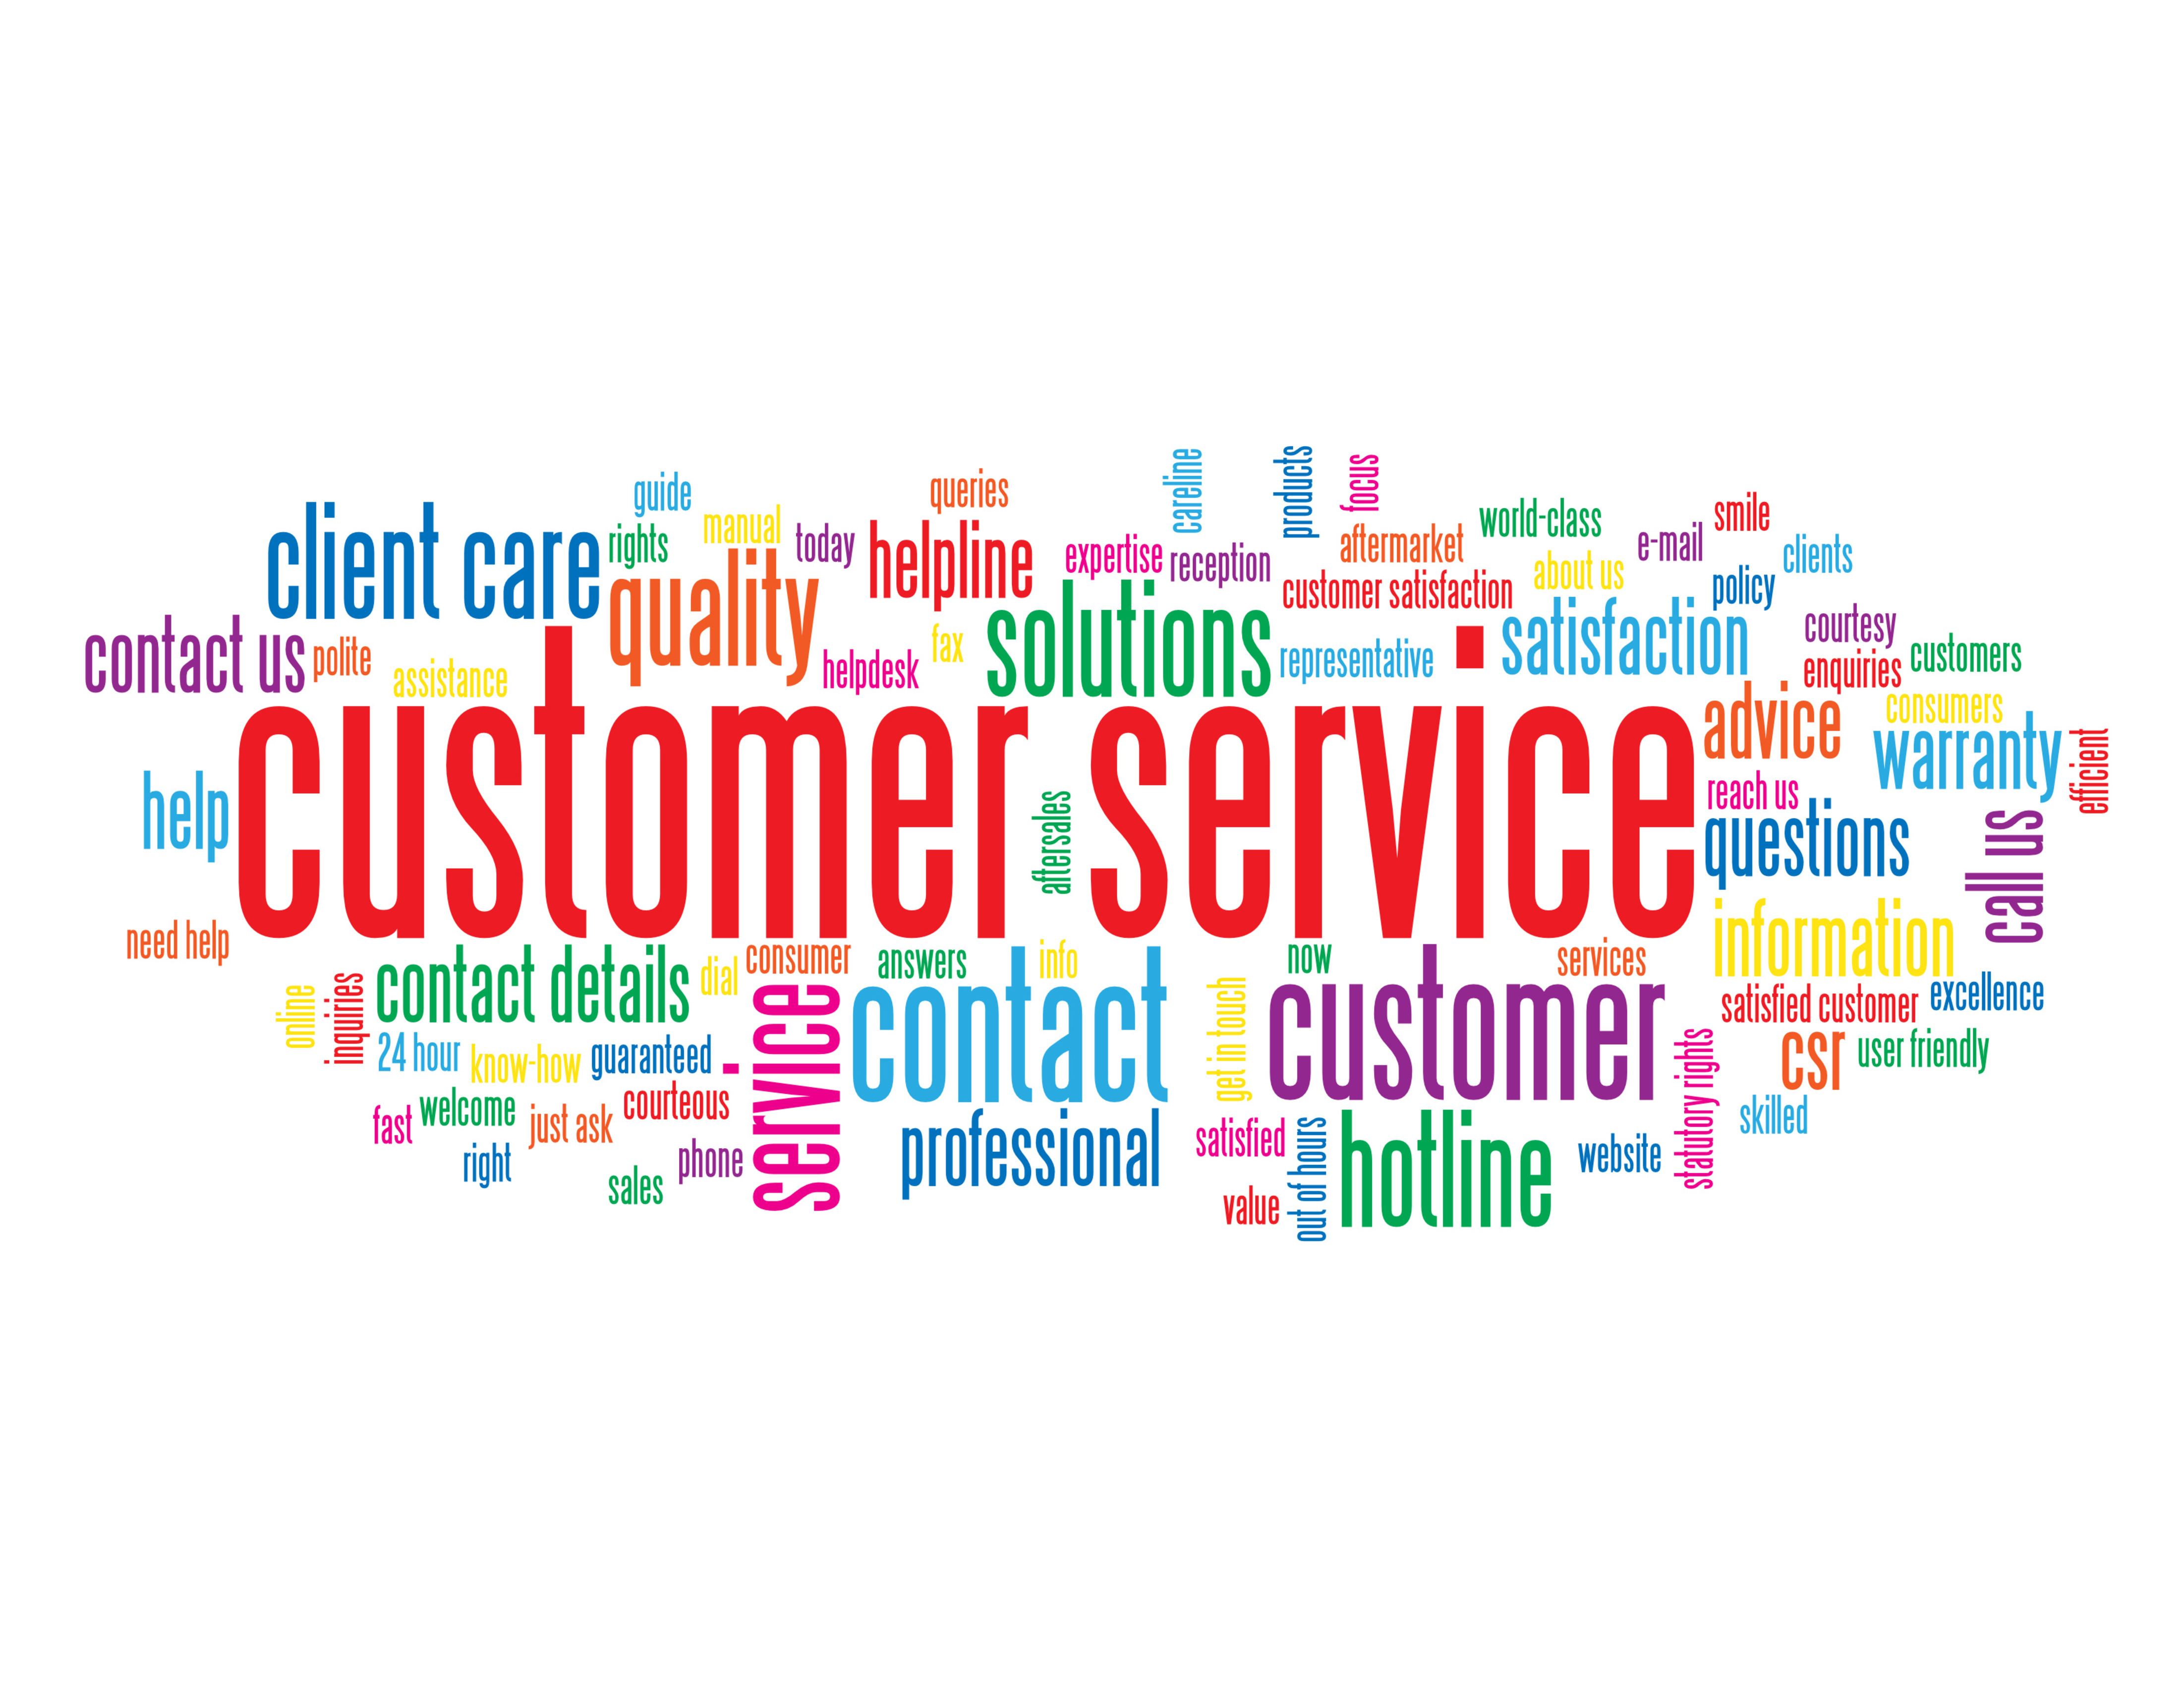 exceptional customer service We found 10 of the most exceptional customer service examples that can make any business profitable in the long run.